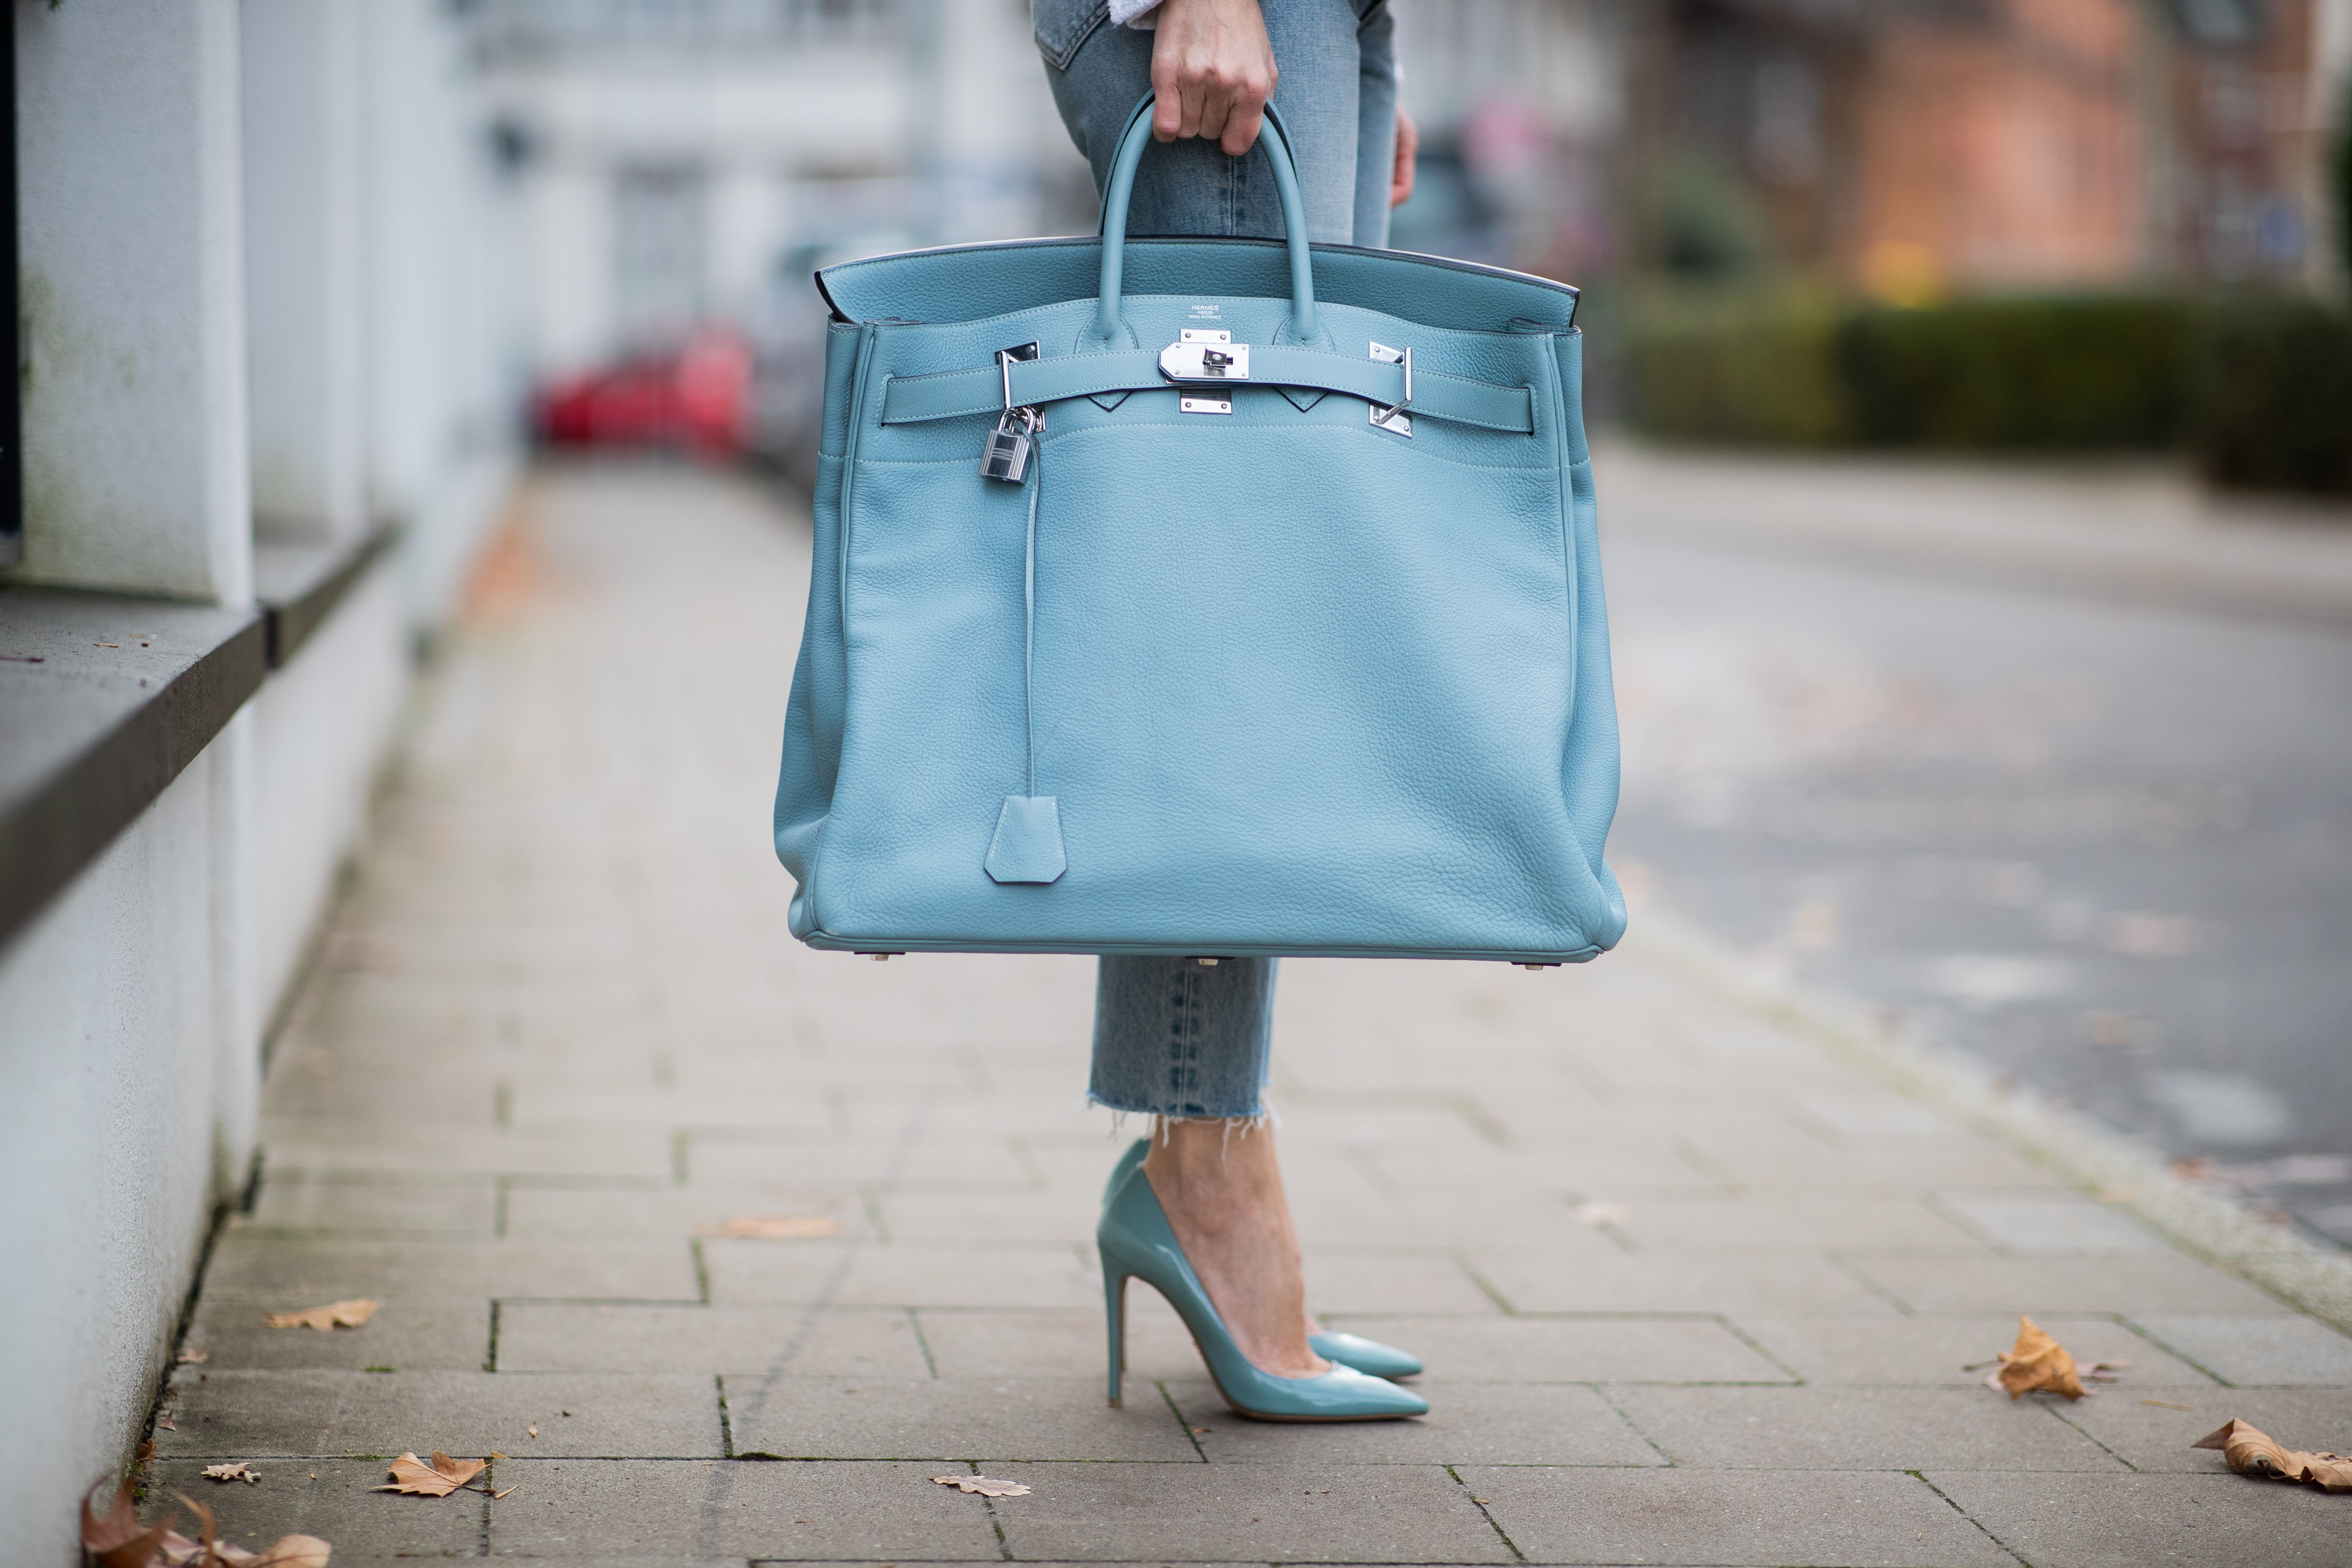 DUESSELDORF, GERMANY - DECEMBER 10: Alexandra Lapp is seen wearing light blue turquois oversized Hermès Birkin Bag, light blue ripped Celine denim jeans, Prada pumps on December 10, 2019 in Duesseldorf, Germany. (Photo by Christian Vierig/Getty Images) (Foto: Getty Images)